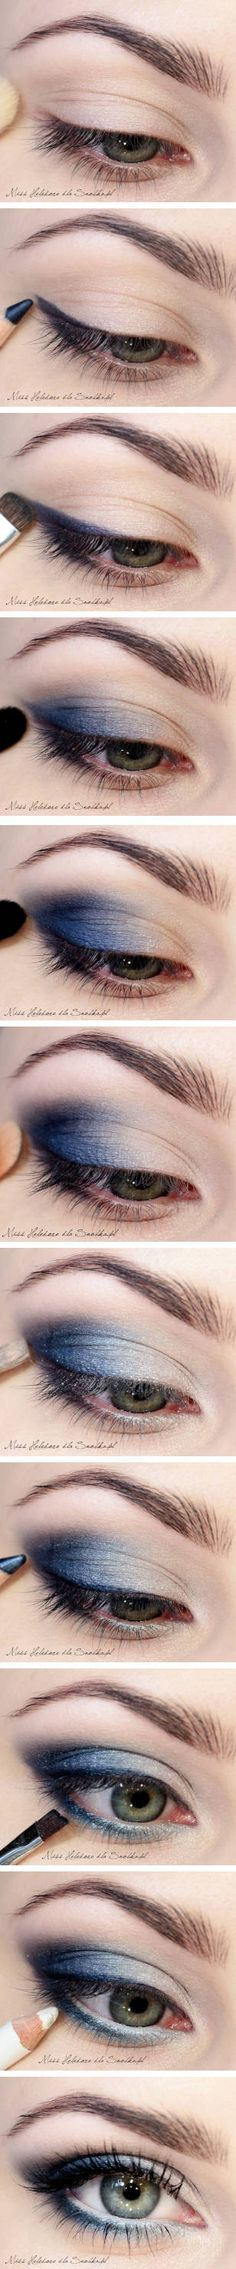 I have blue eyeshadow but never use it for fear of looking like I'm straight out of 1992. But I'll try it like this.